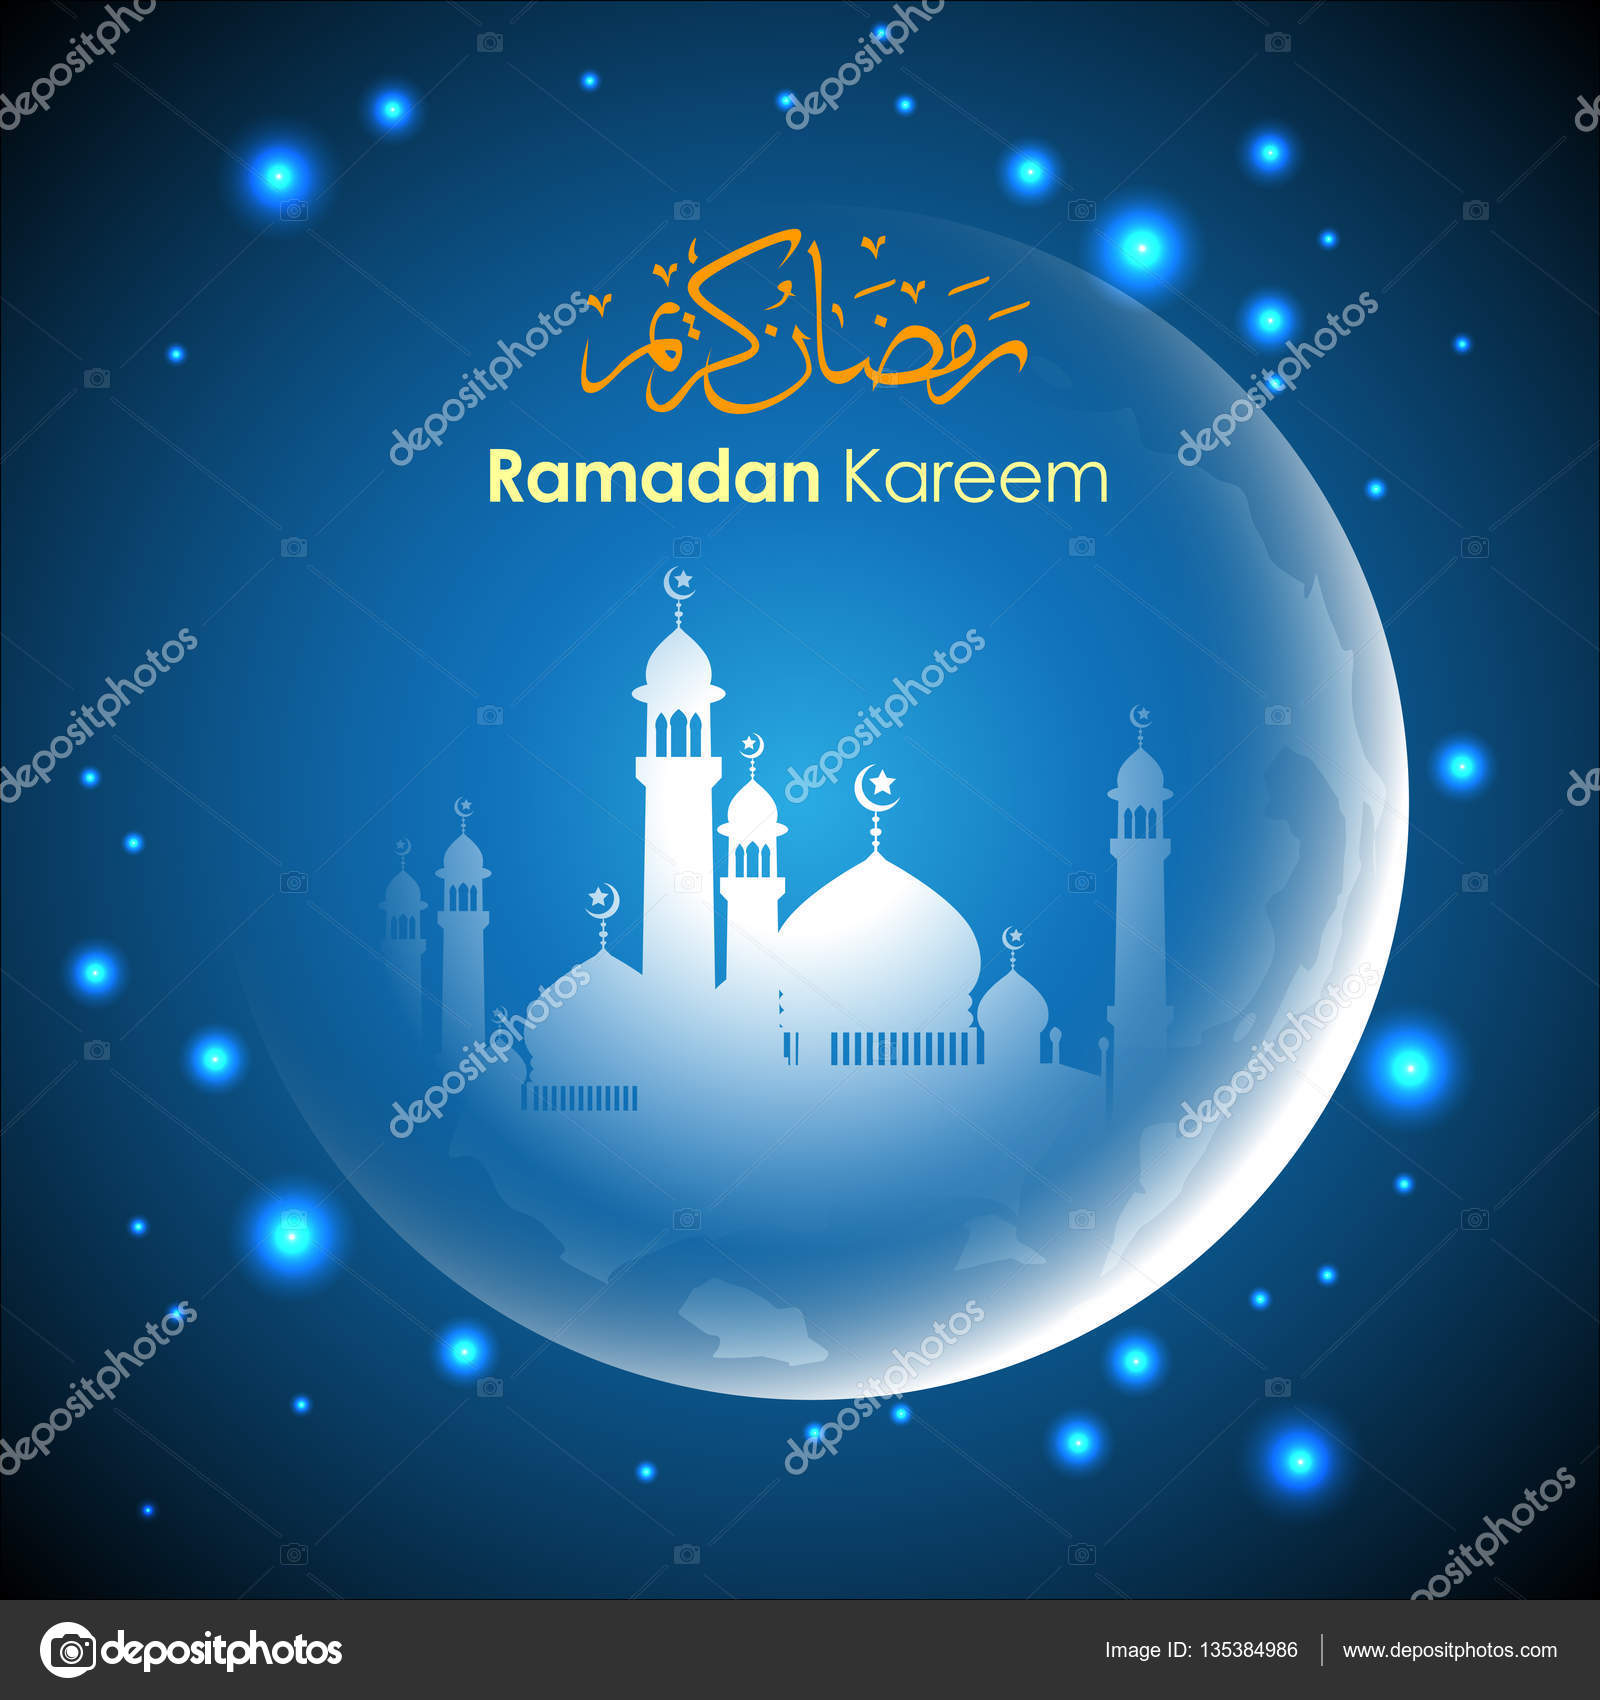 Ramadan greetings in arabic script stock vector legendofsinbatt ramadan greetings in arabic script stock vector m4hsunfo